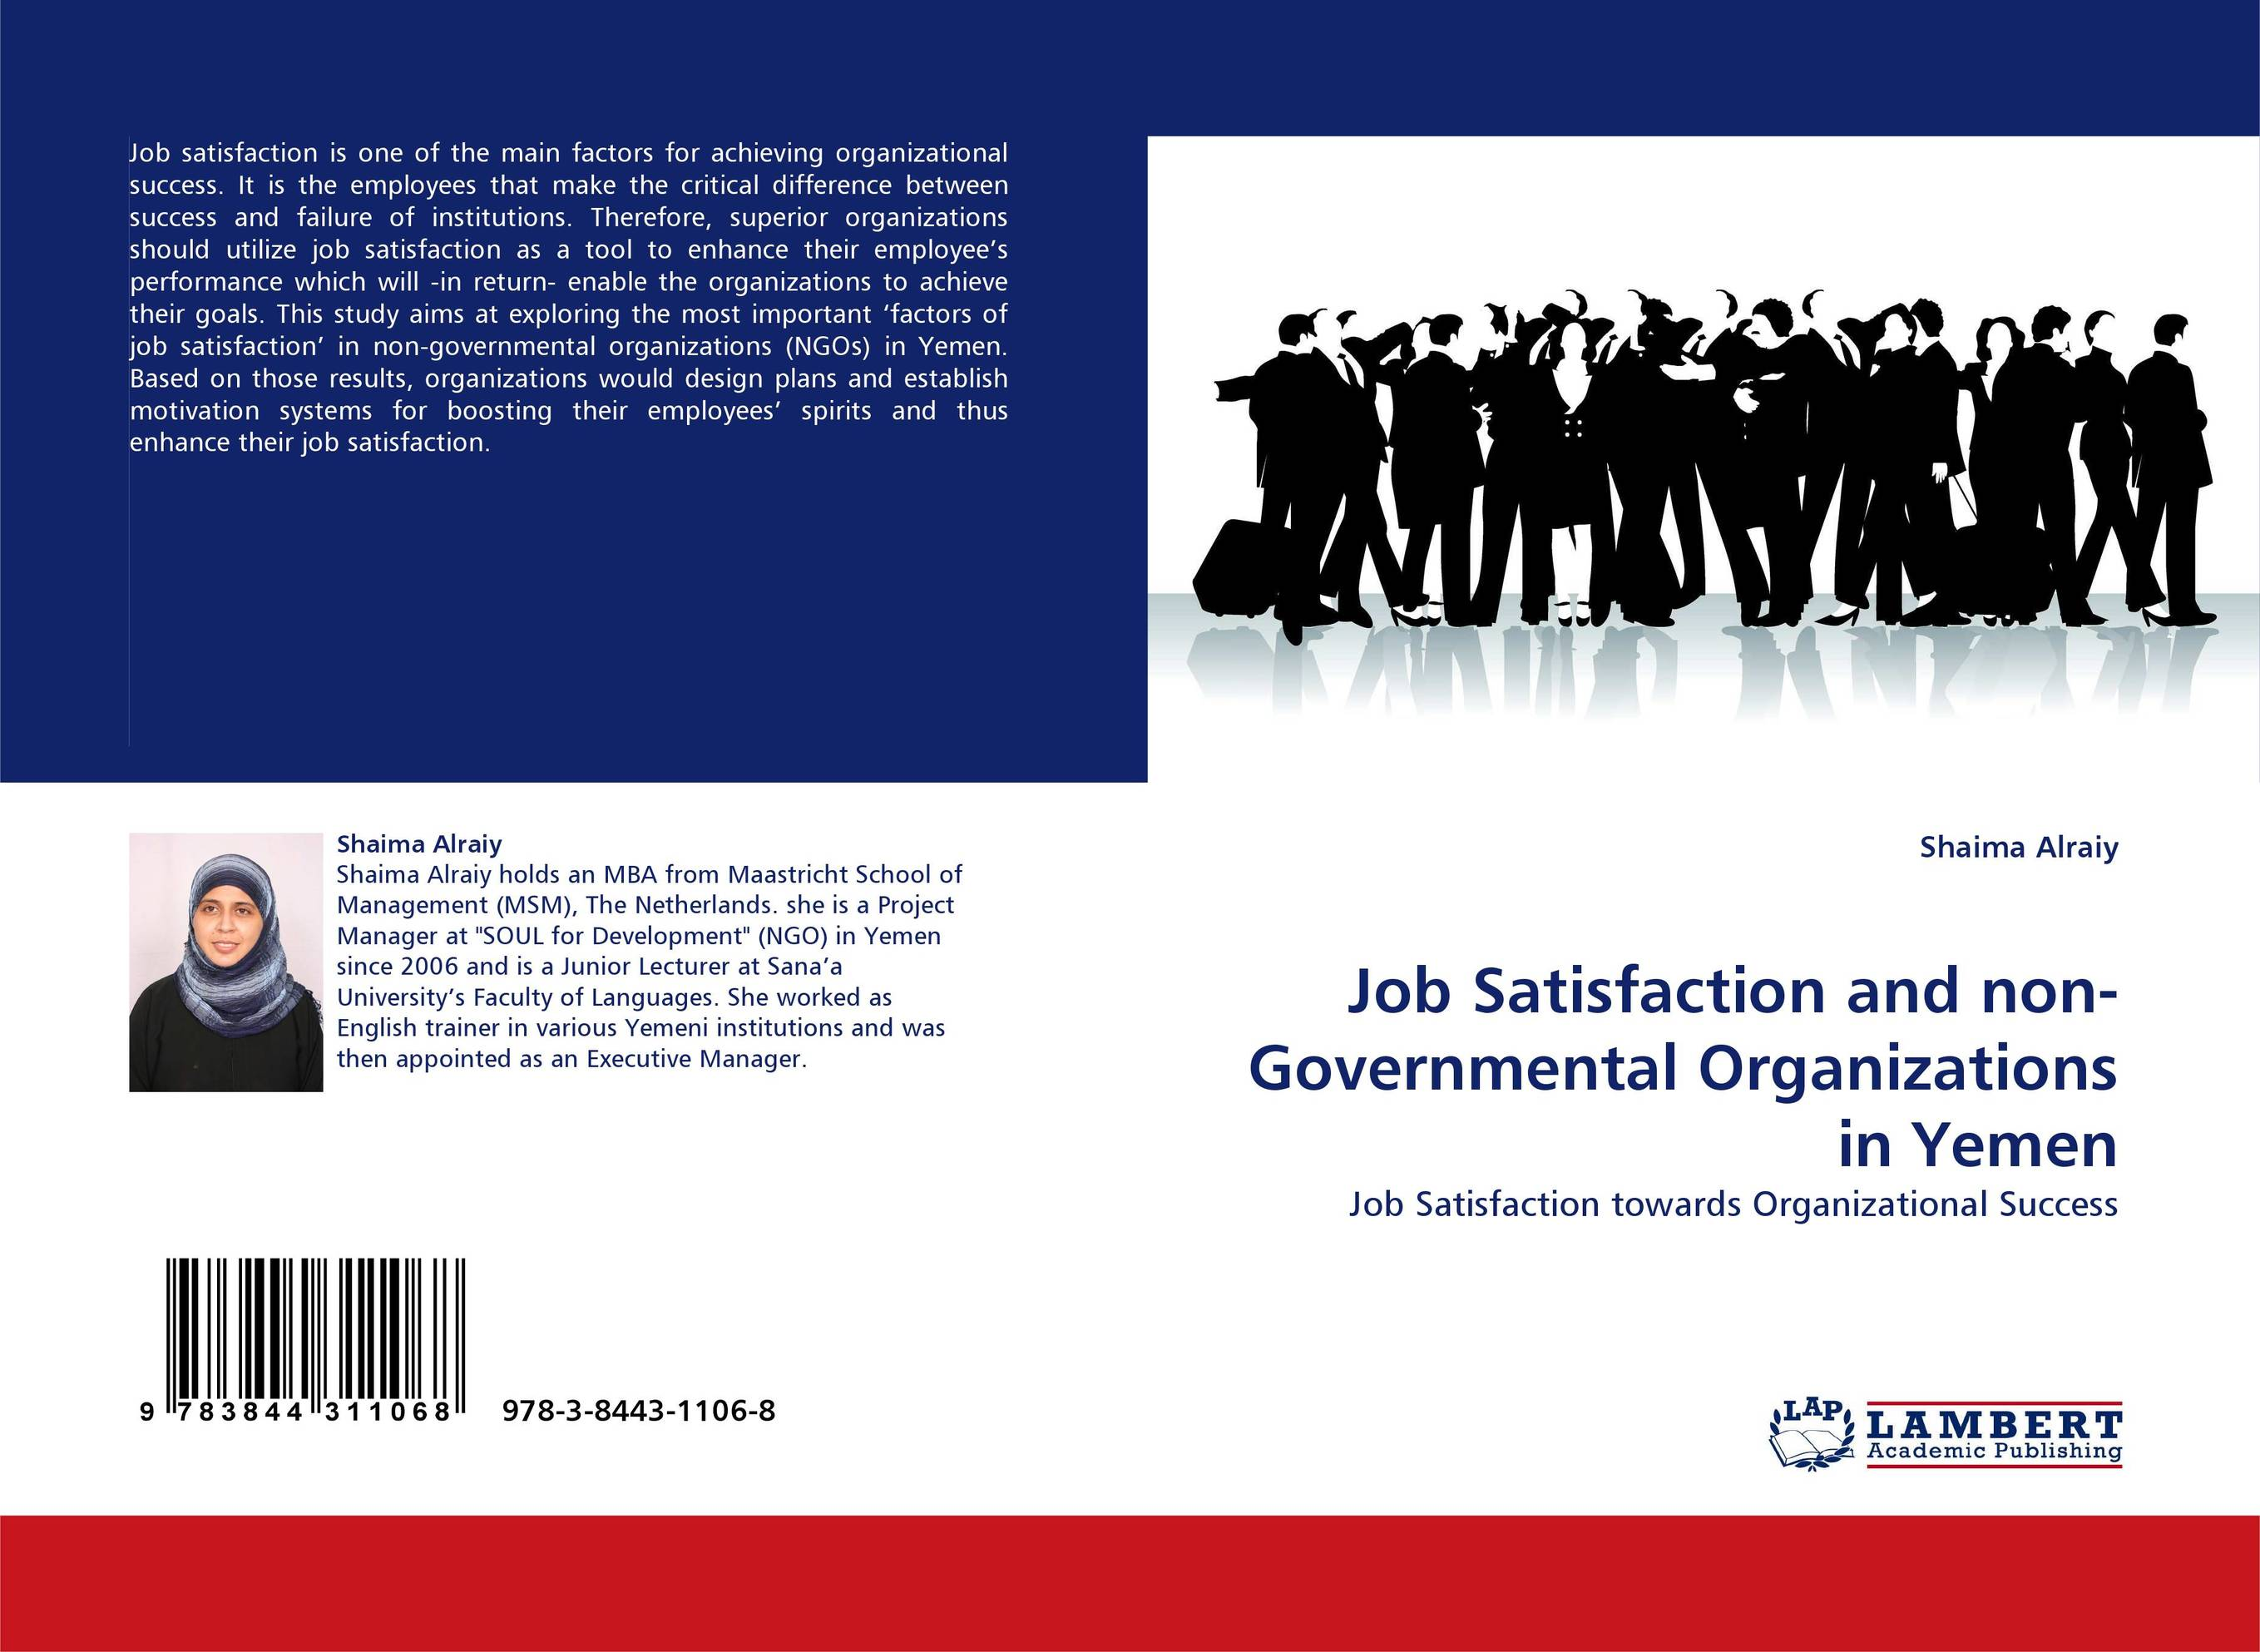 the airline organization in malaysia commerce essay Malaysia airlines' organizational structure type: bureaucratic structure the company has a pyramidal structure where the board of directors have the highest level of authority and the chain of command goes through different departments and its employees.